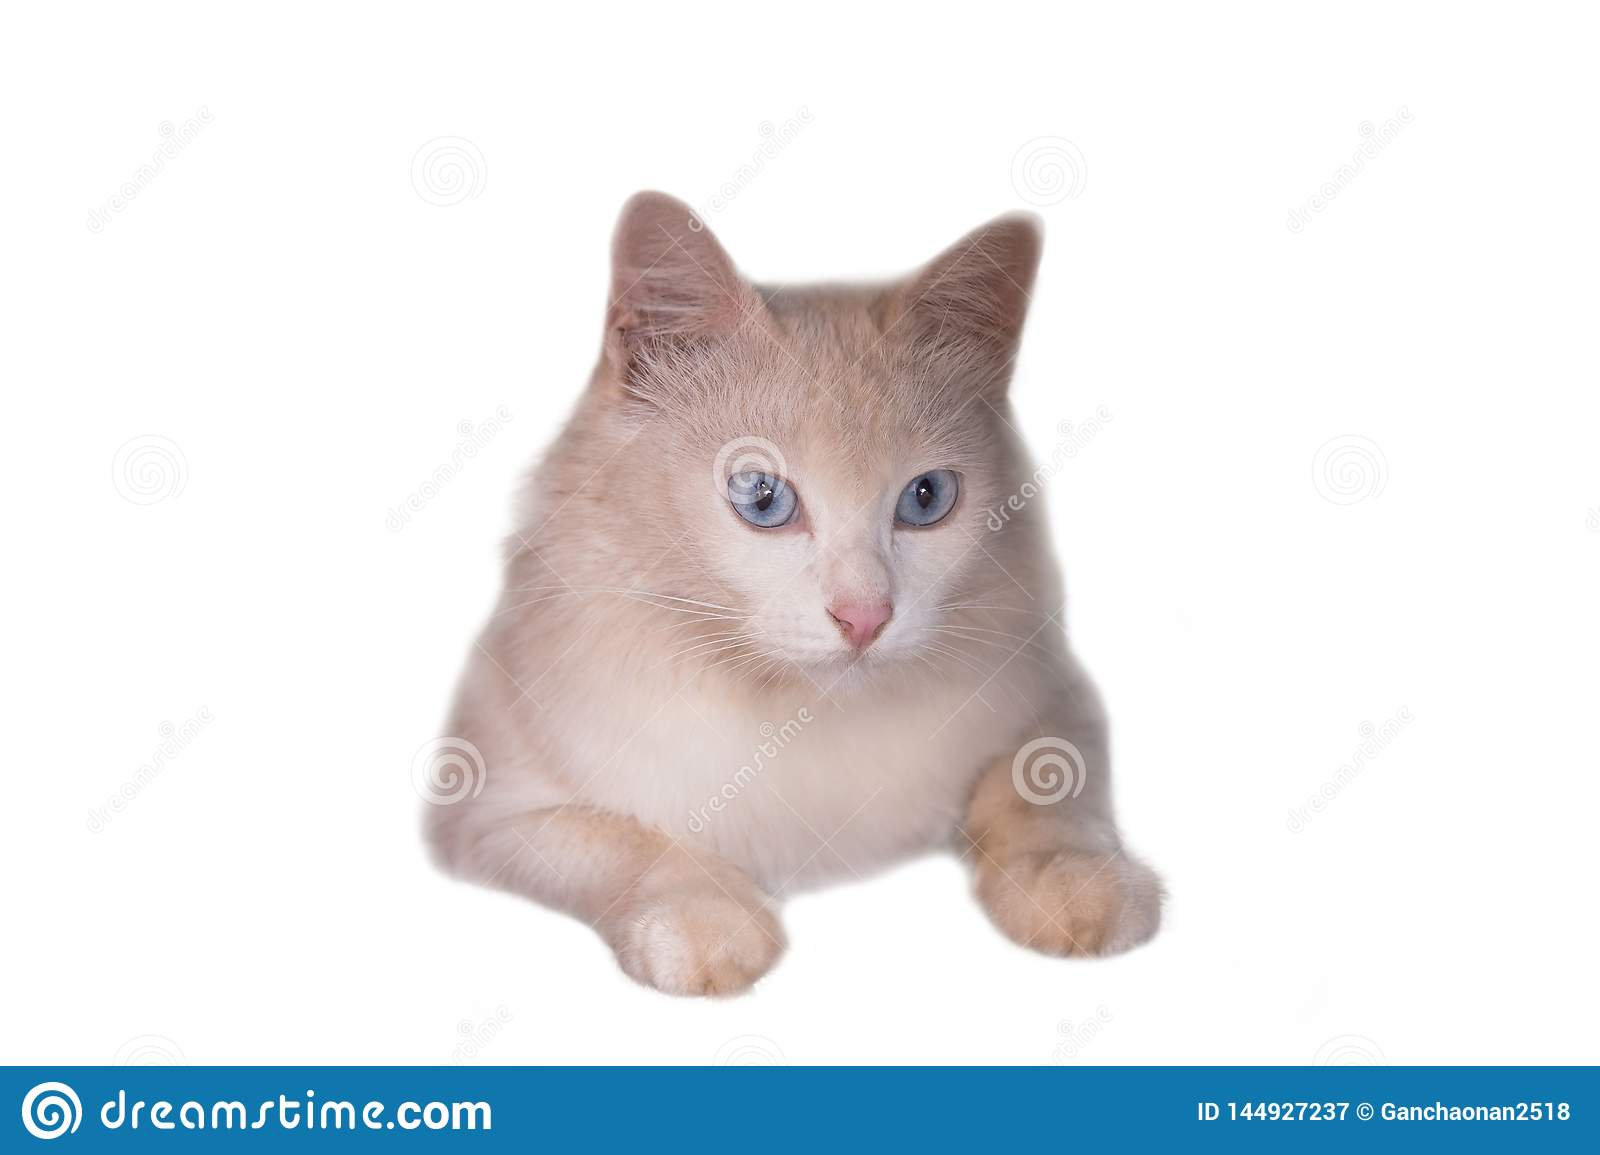 Siberian White Beige Kitten Cat With Blue Eyes Sitting And Looking Forward Isolated Stock Image Image Of Gray Feline 144927237